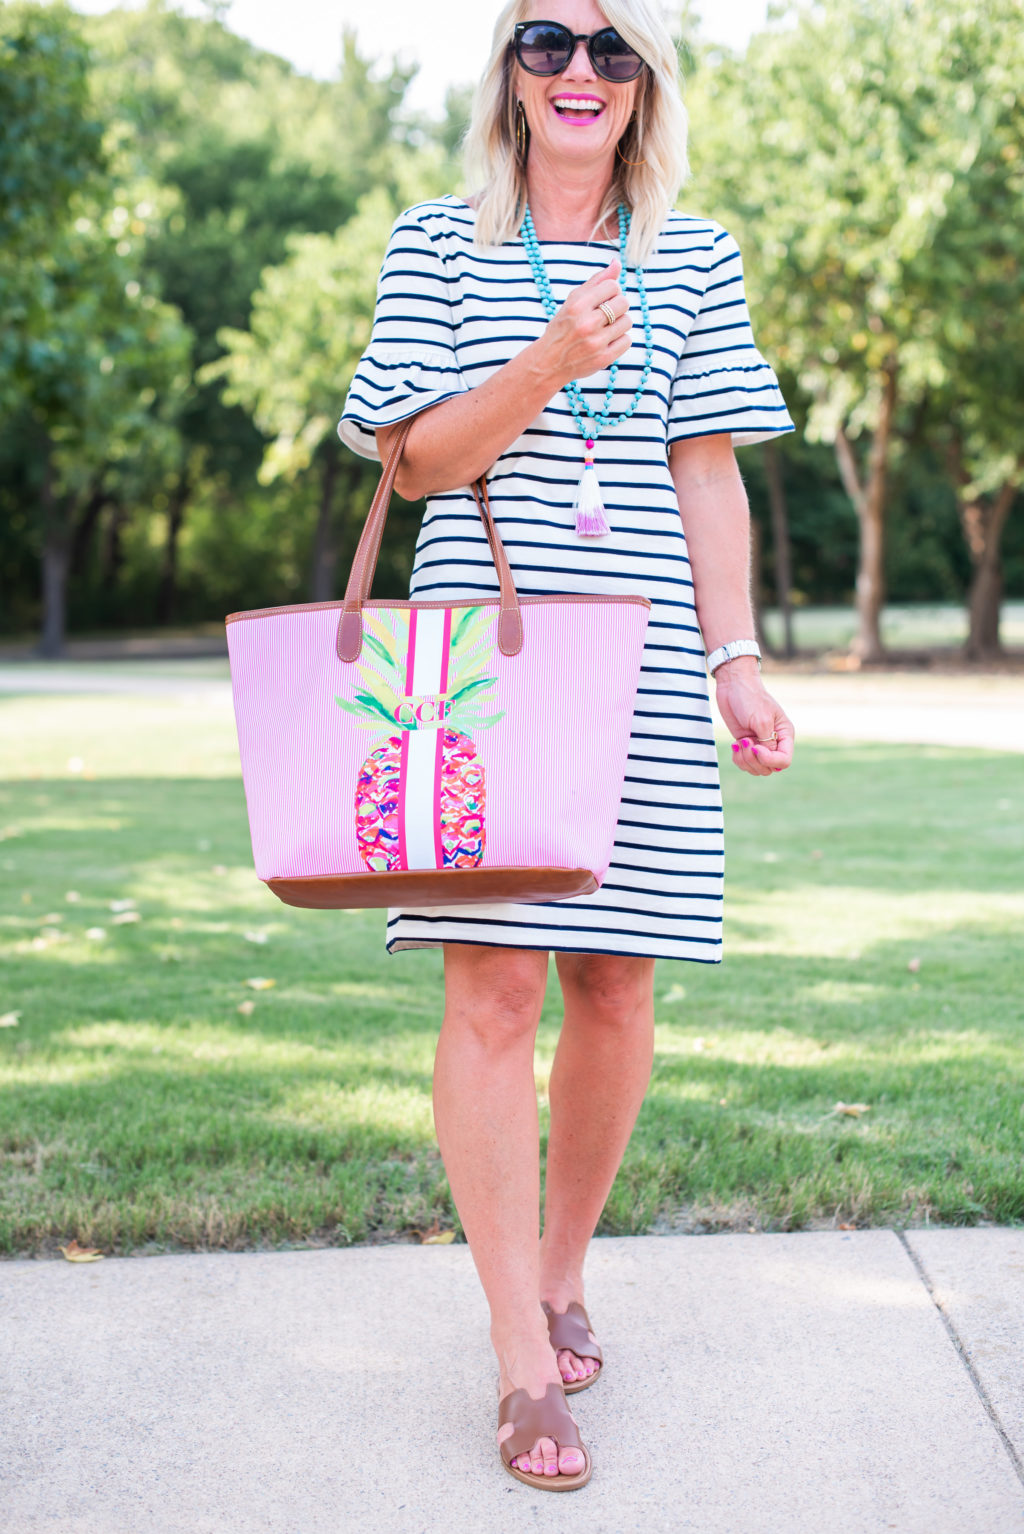 jcrew striped dress summer outfit